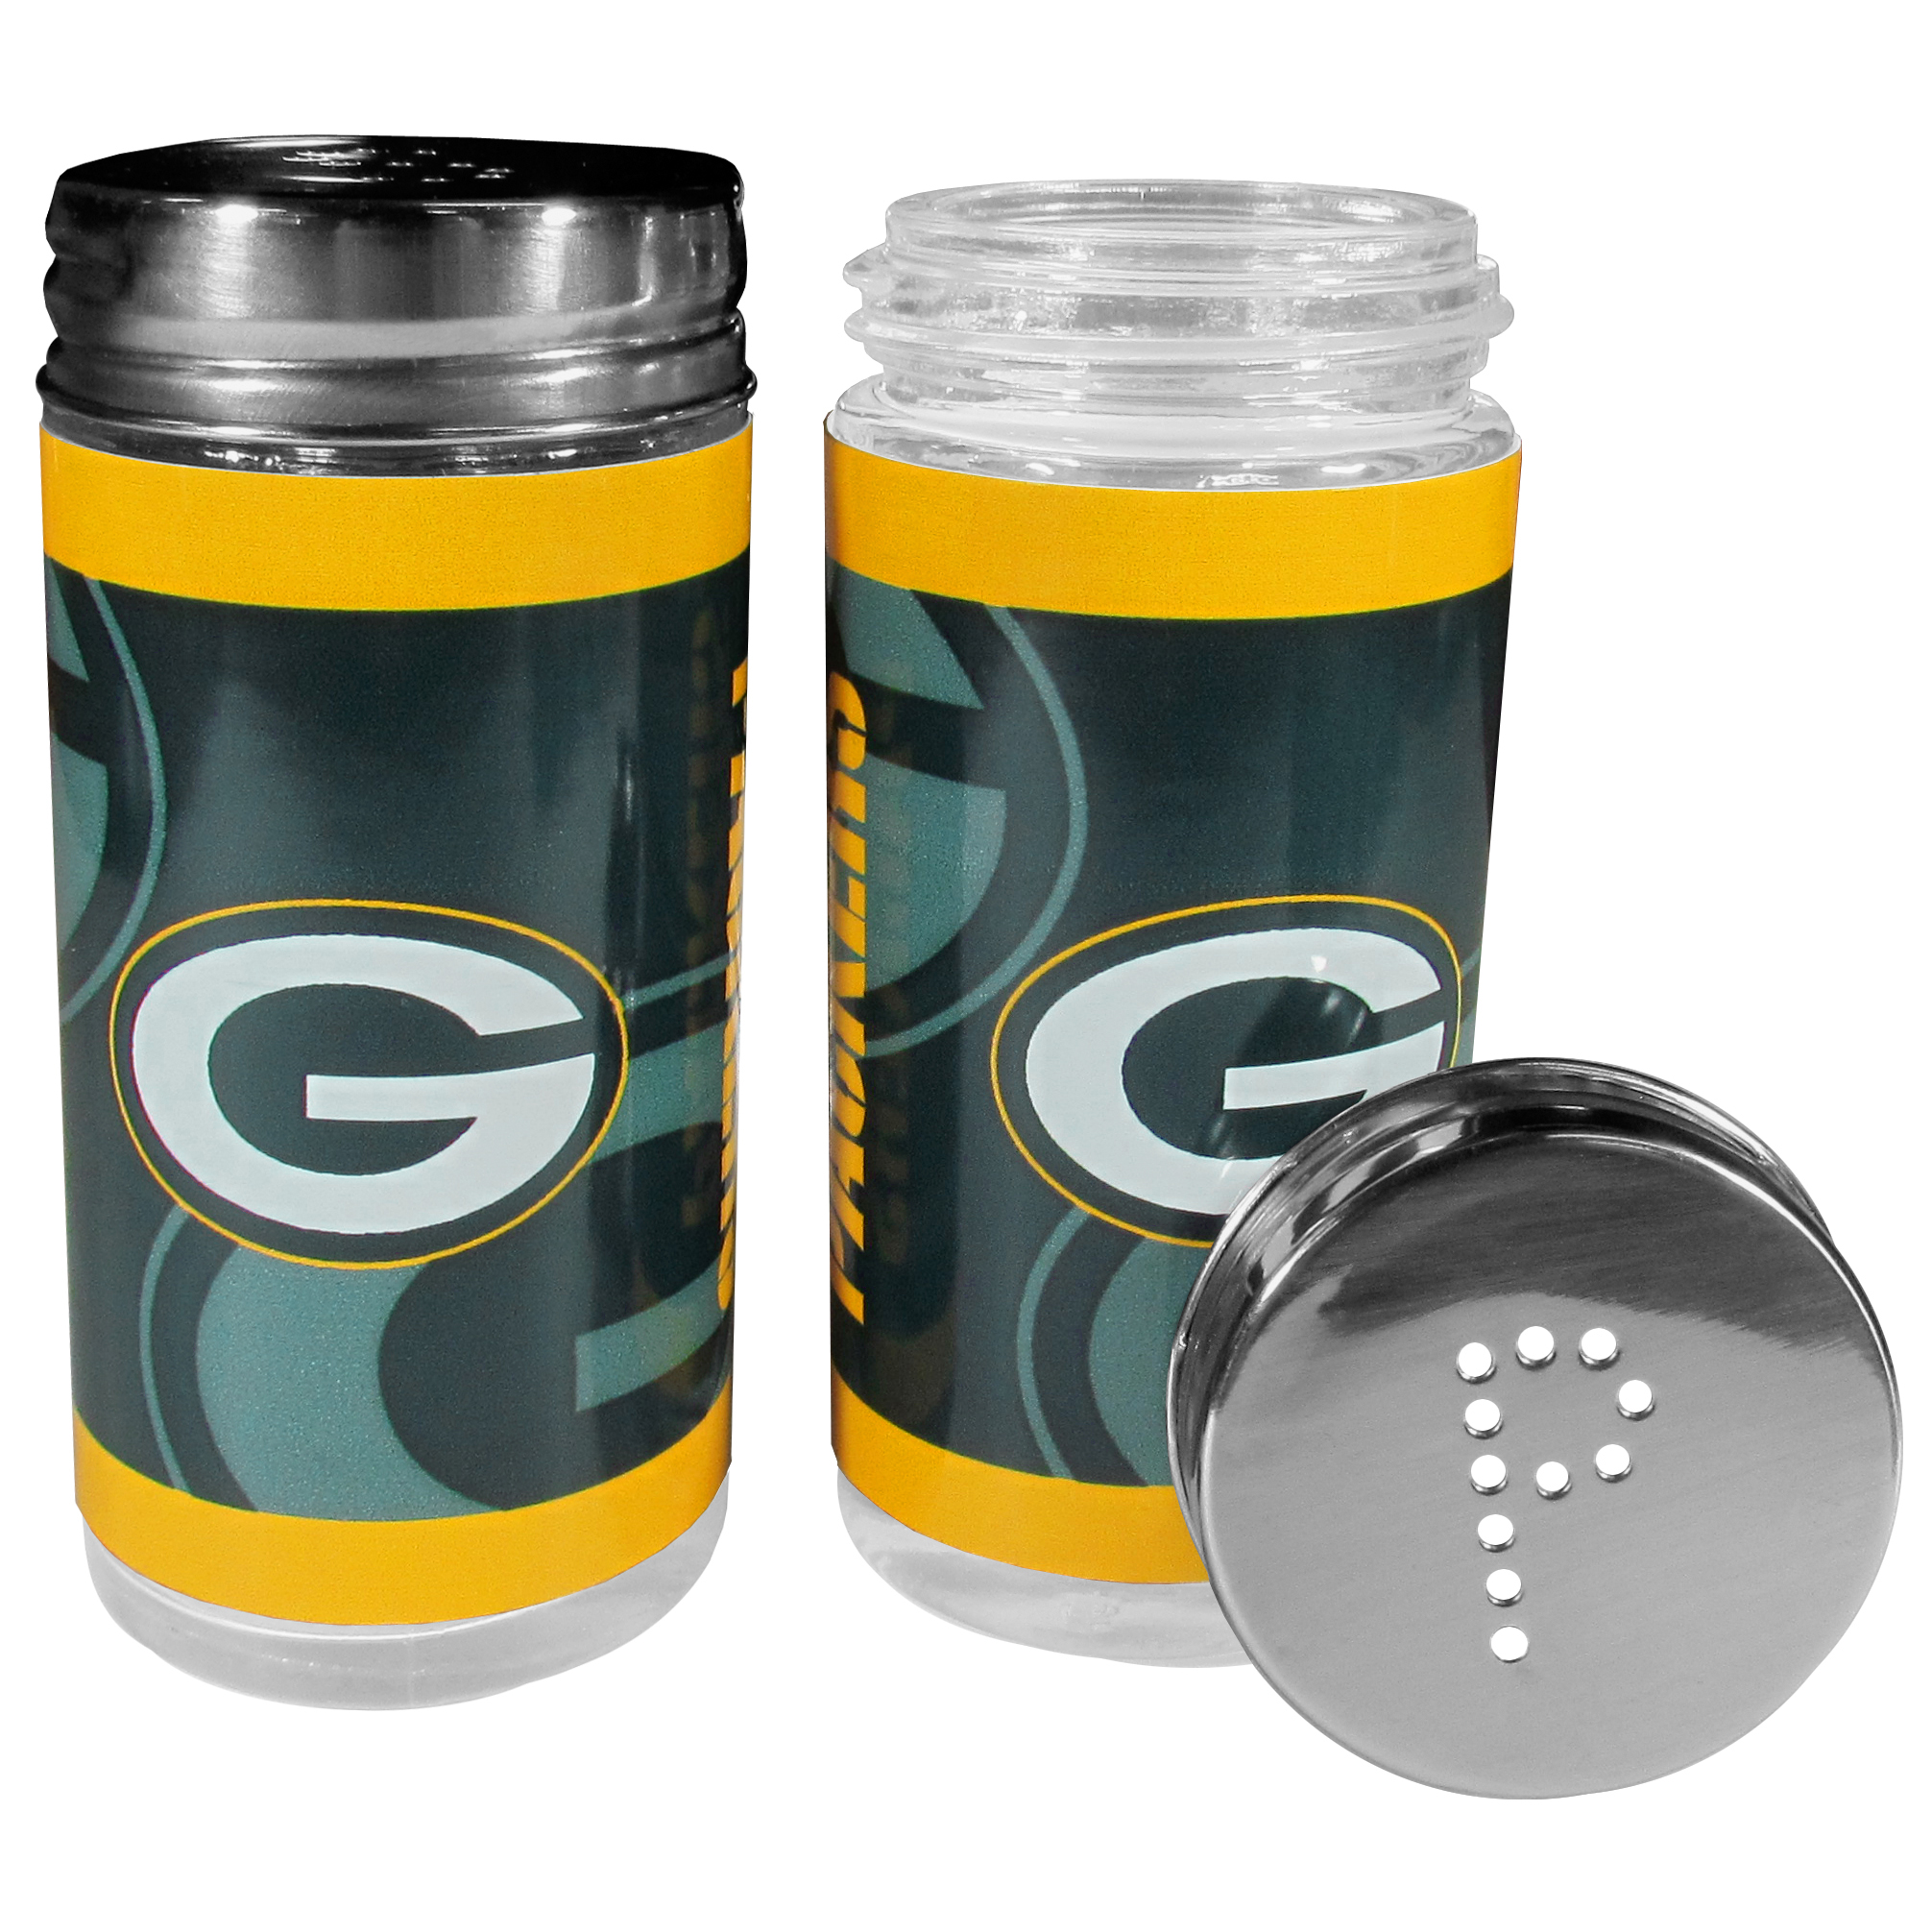 Green Bay Packers Tailgater Salt & Pepper Shakers - No tailgate party is complete without your Green Bay Packers salt & pepper shakers featuring bright team graphics. The glass shakers are 3.75 inches tall and the screw top lids have holes that spell out P and S. These team shakers are a great grill accessory whether you are barbecuing on the patio, picnicing or having a game day party.